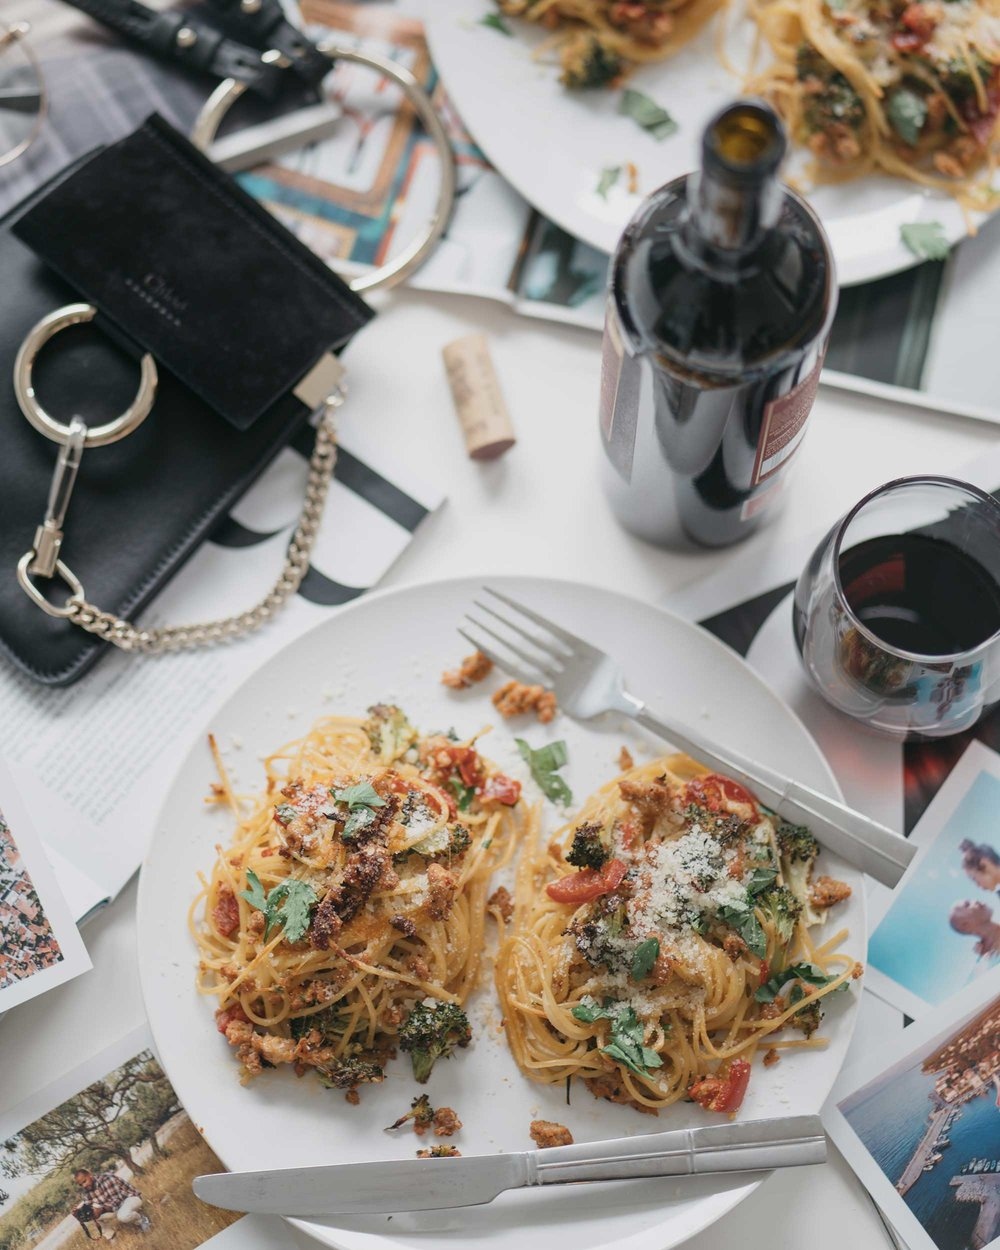 how-to-make-spagetti-nests-with-italian-sausage-broccoli-and-hot-cherry-peppers-flatlay-dinner-18.jpg